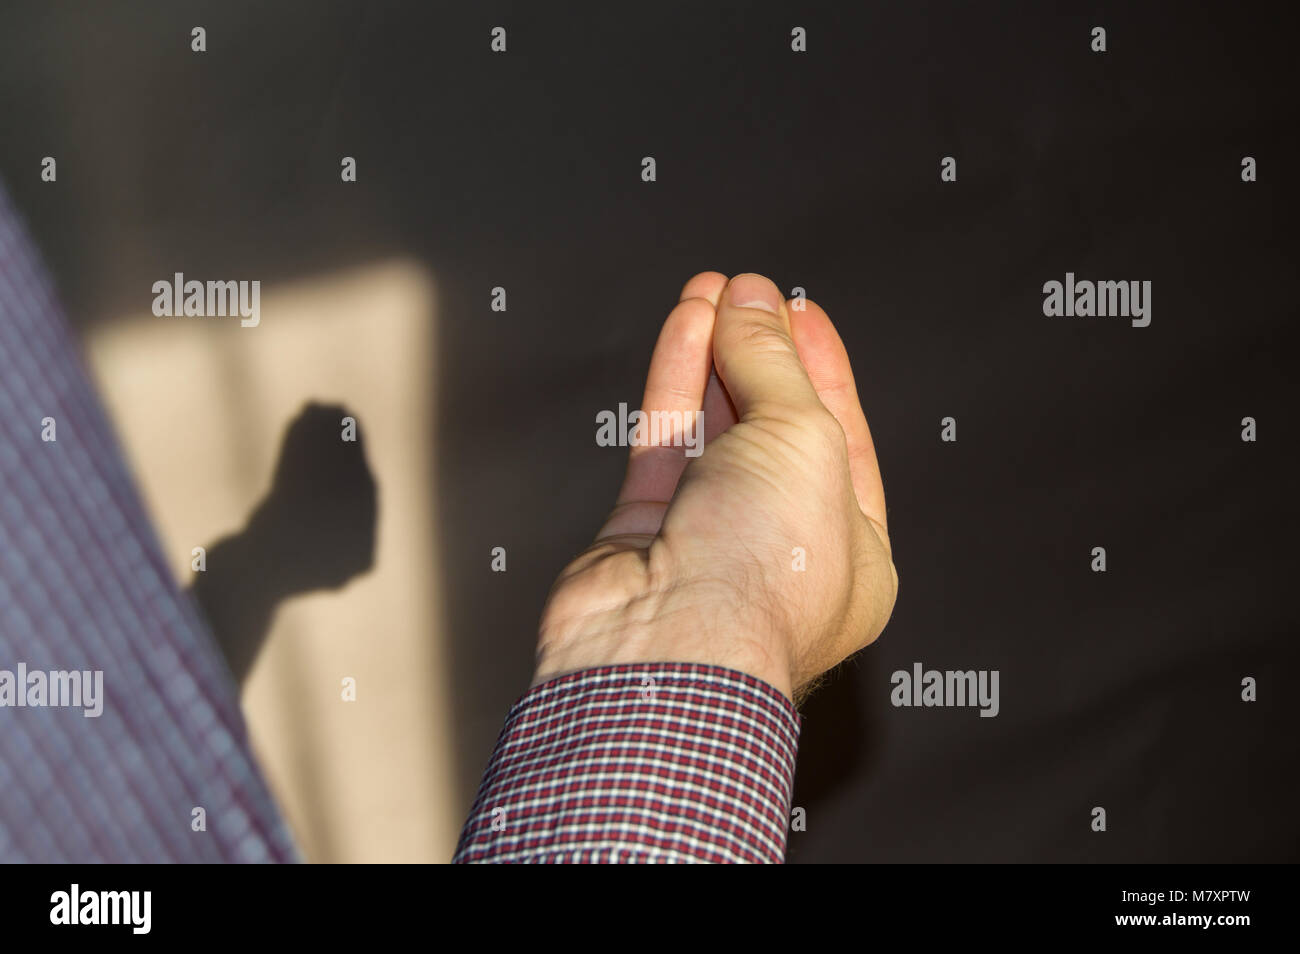 man's hand with fingers folded in a pinch, a shadow on the wall by hand - Stock Image